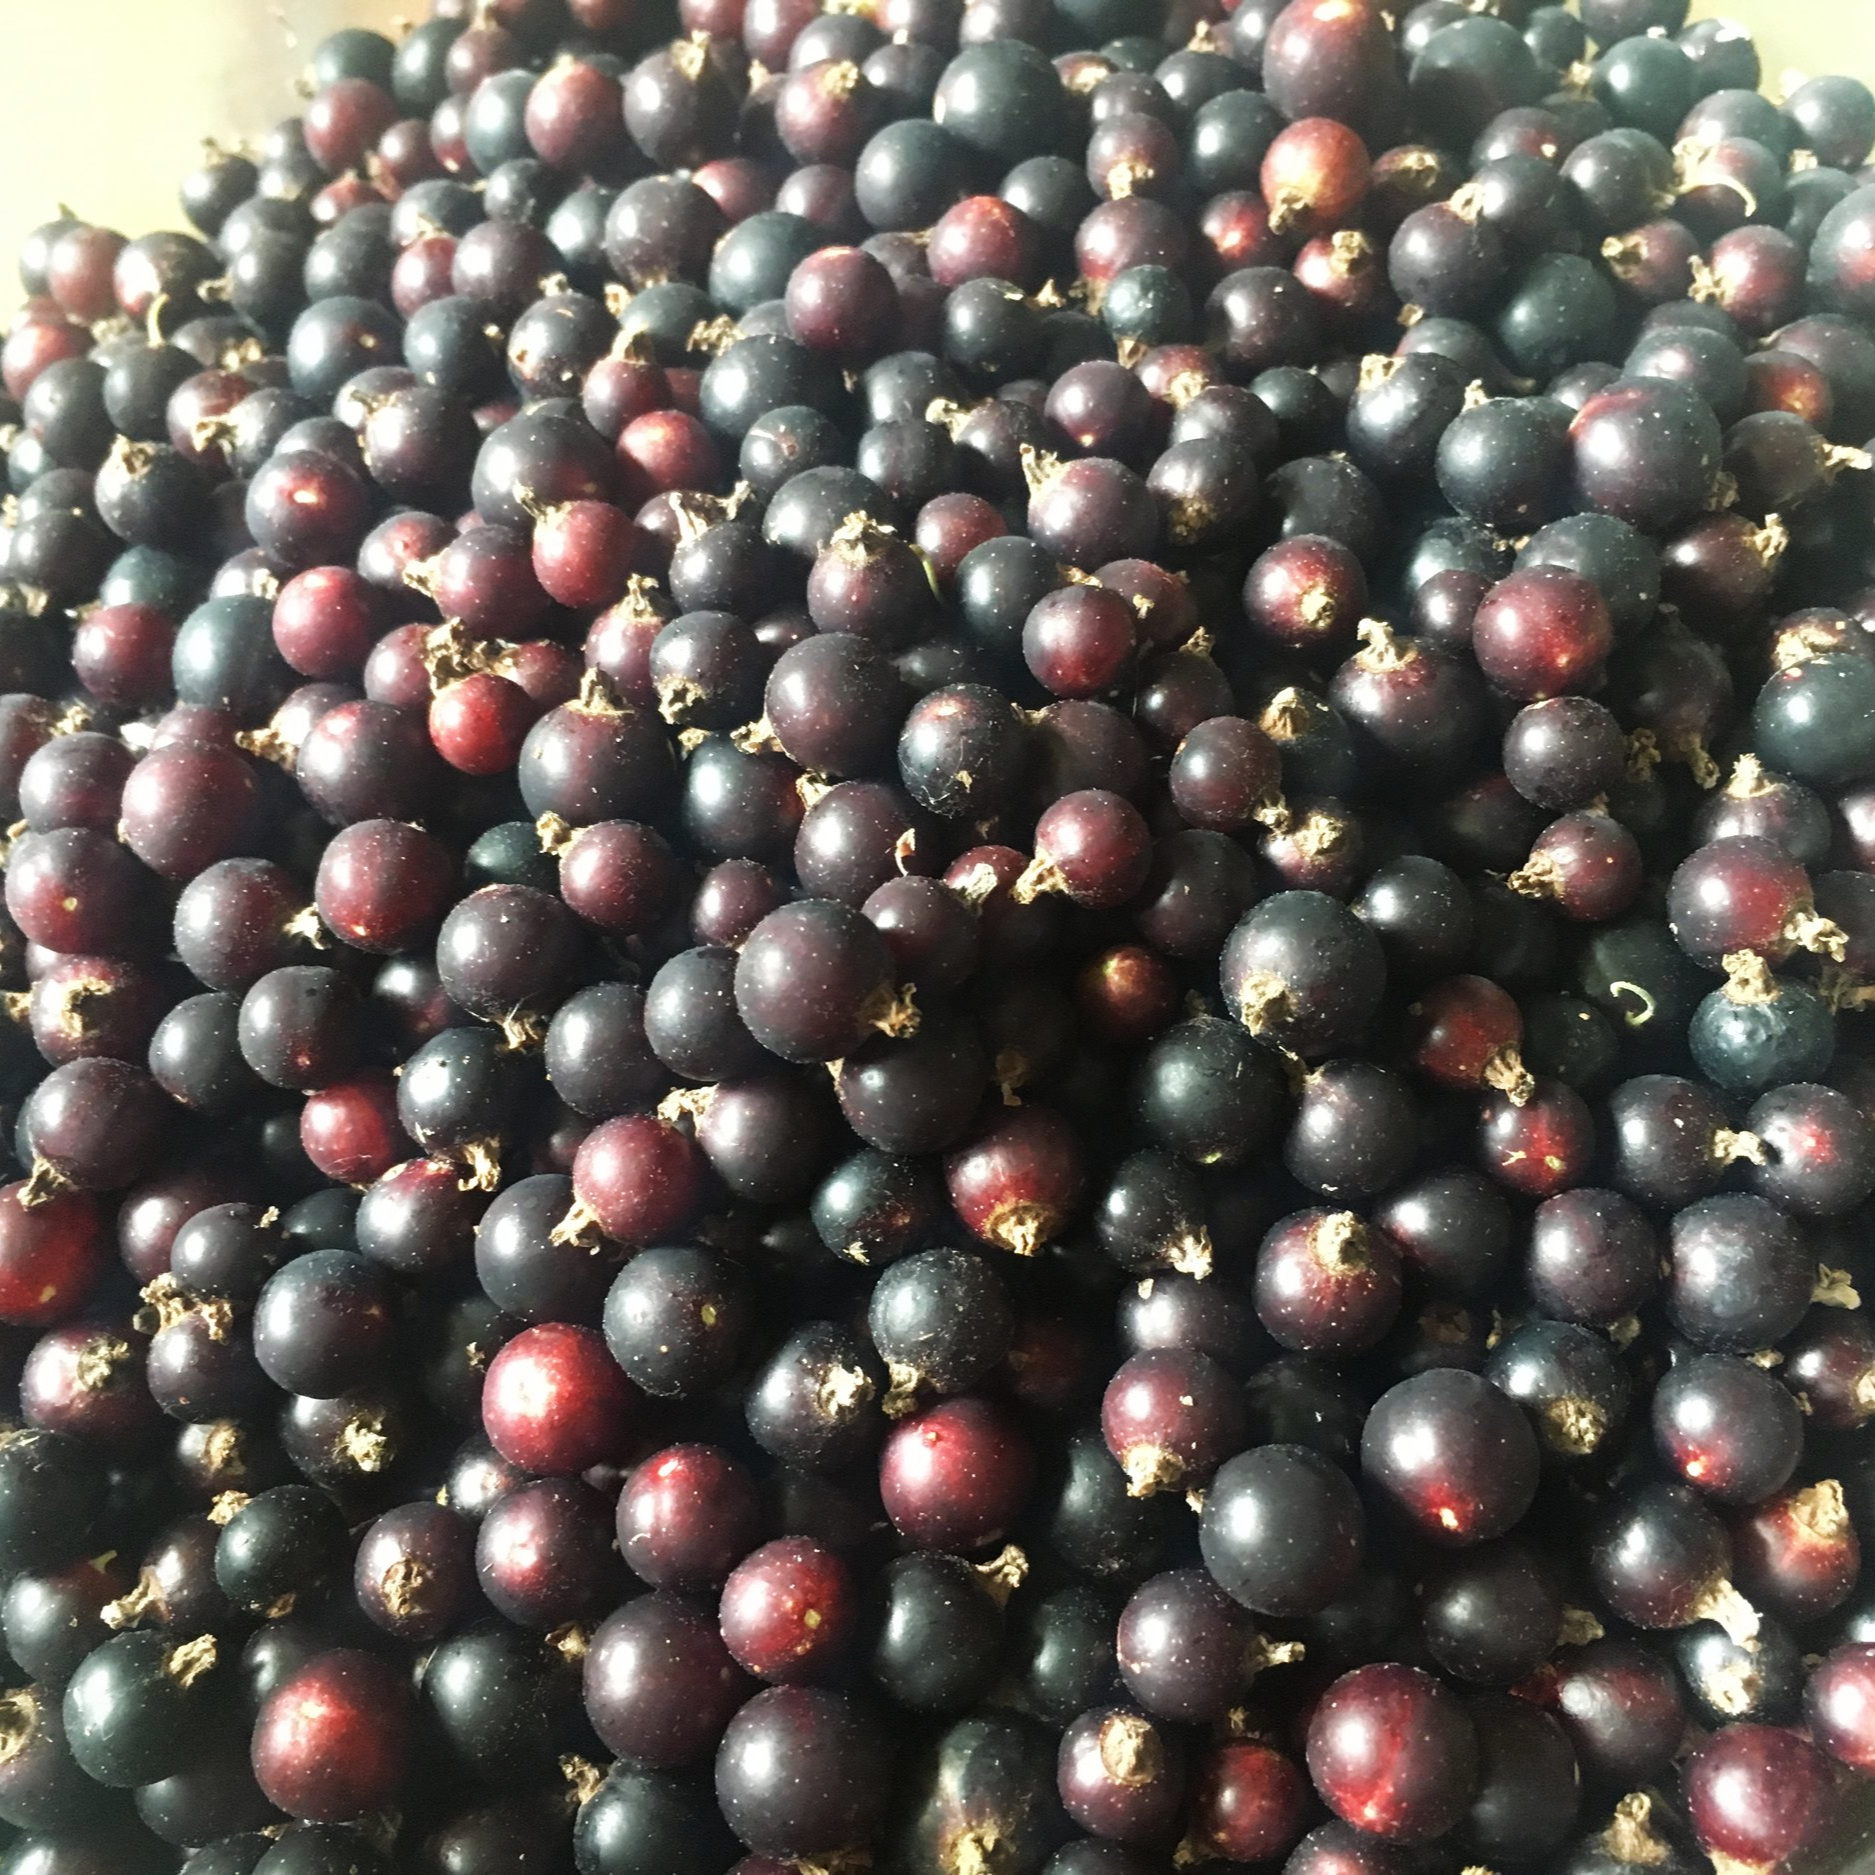 Harvested Black Currants